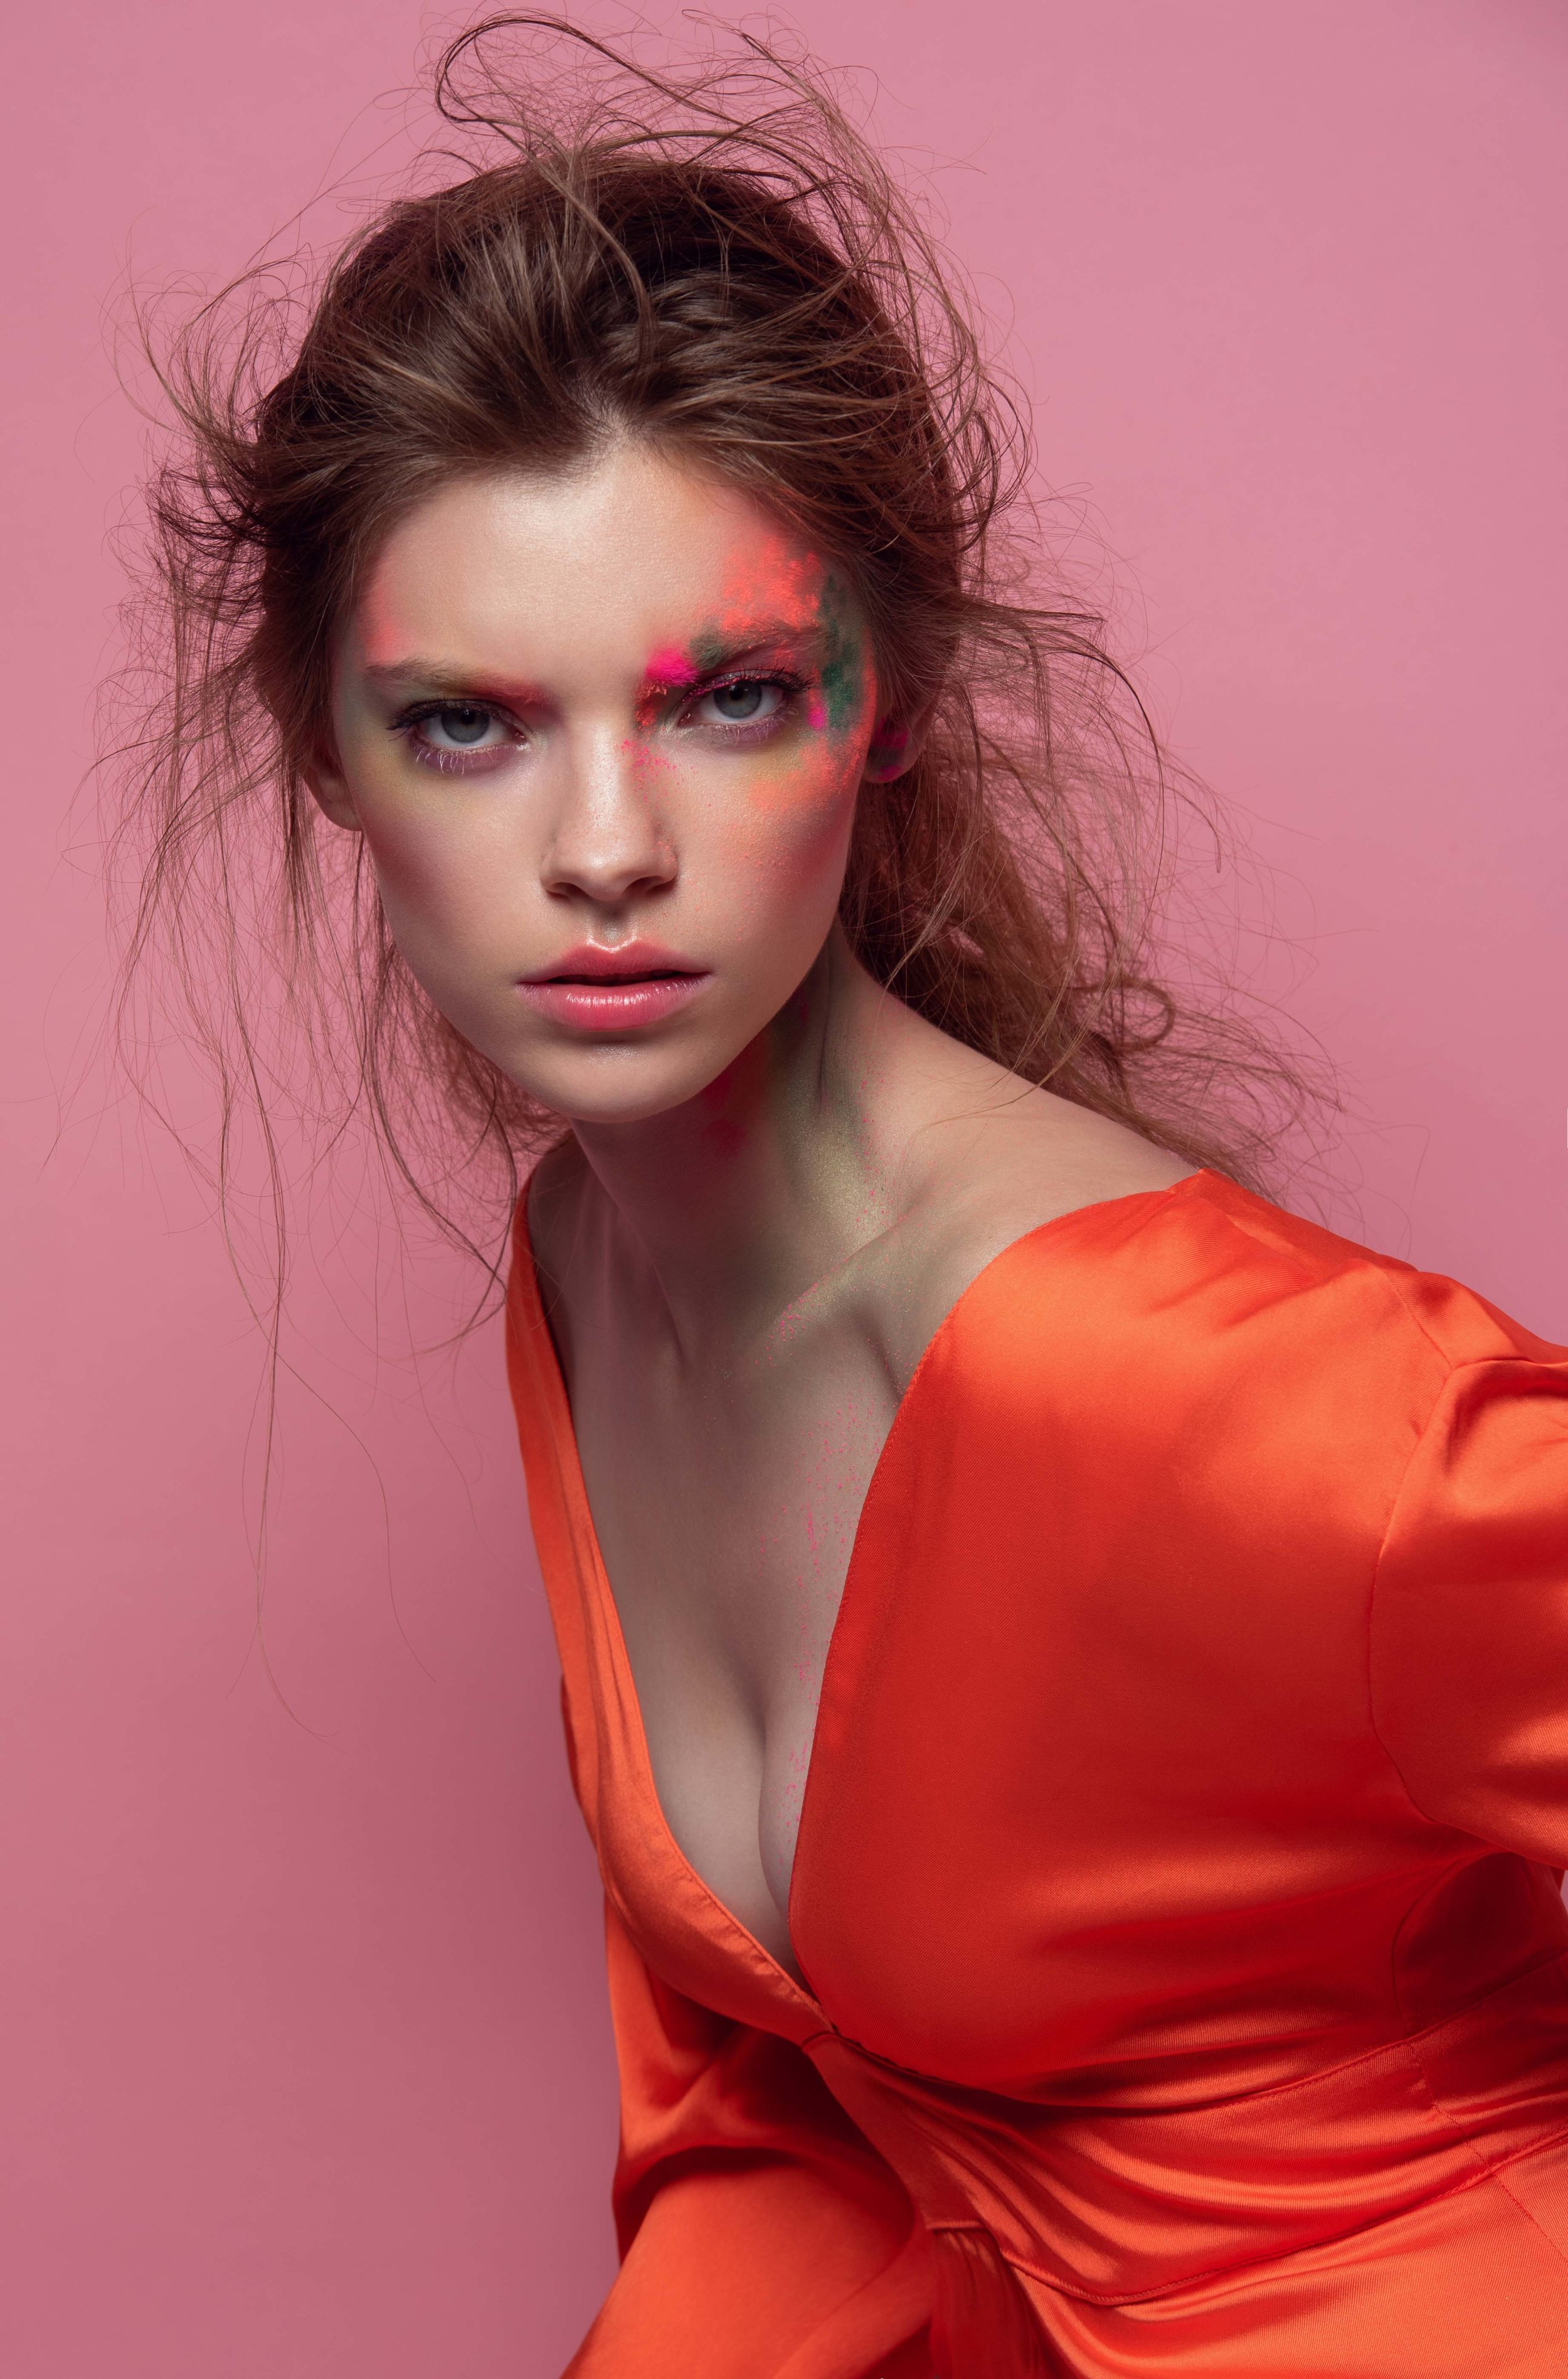 Make-up forever Neon pigments